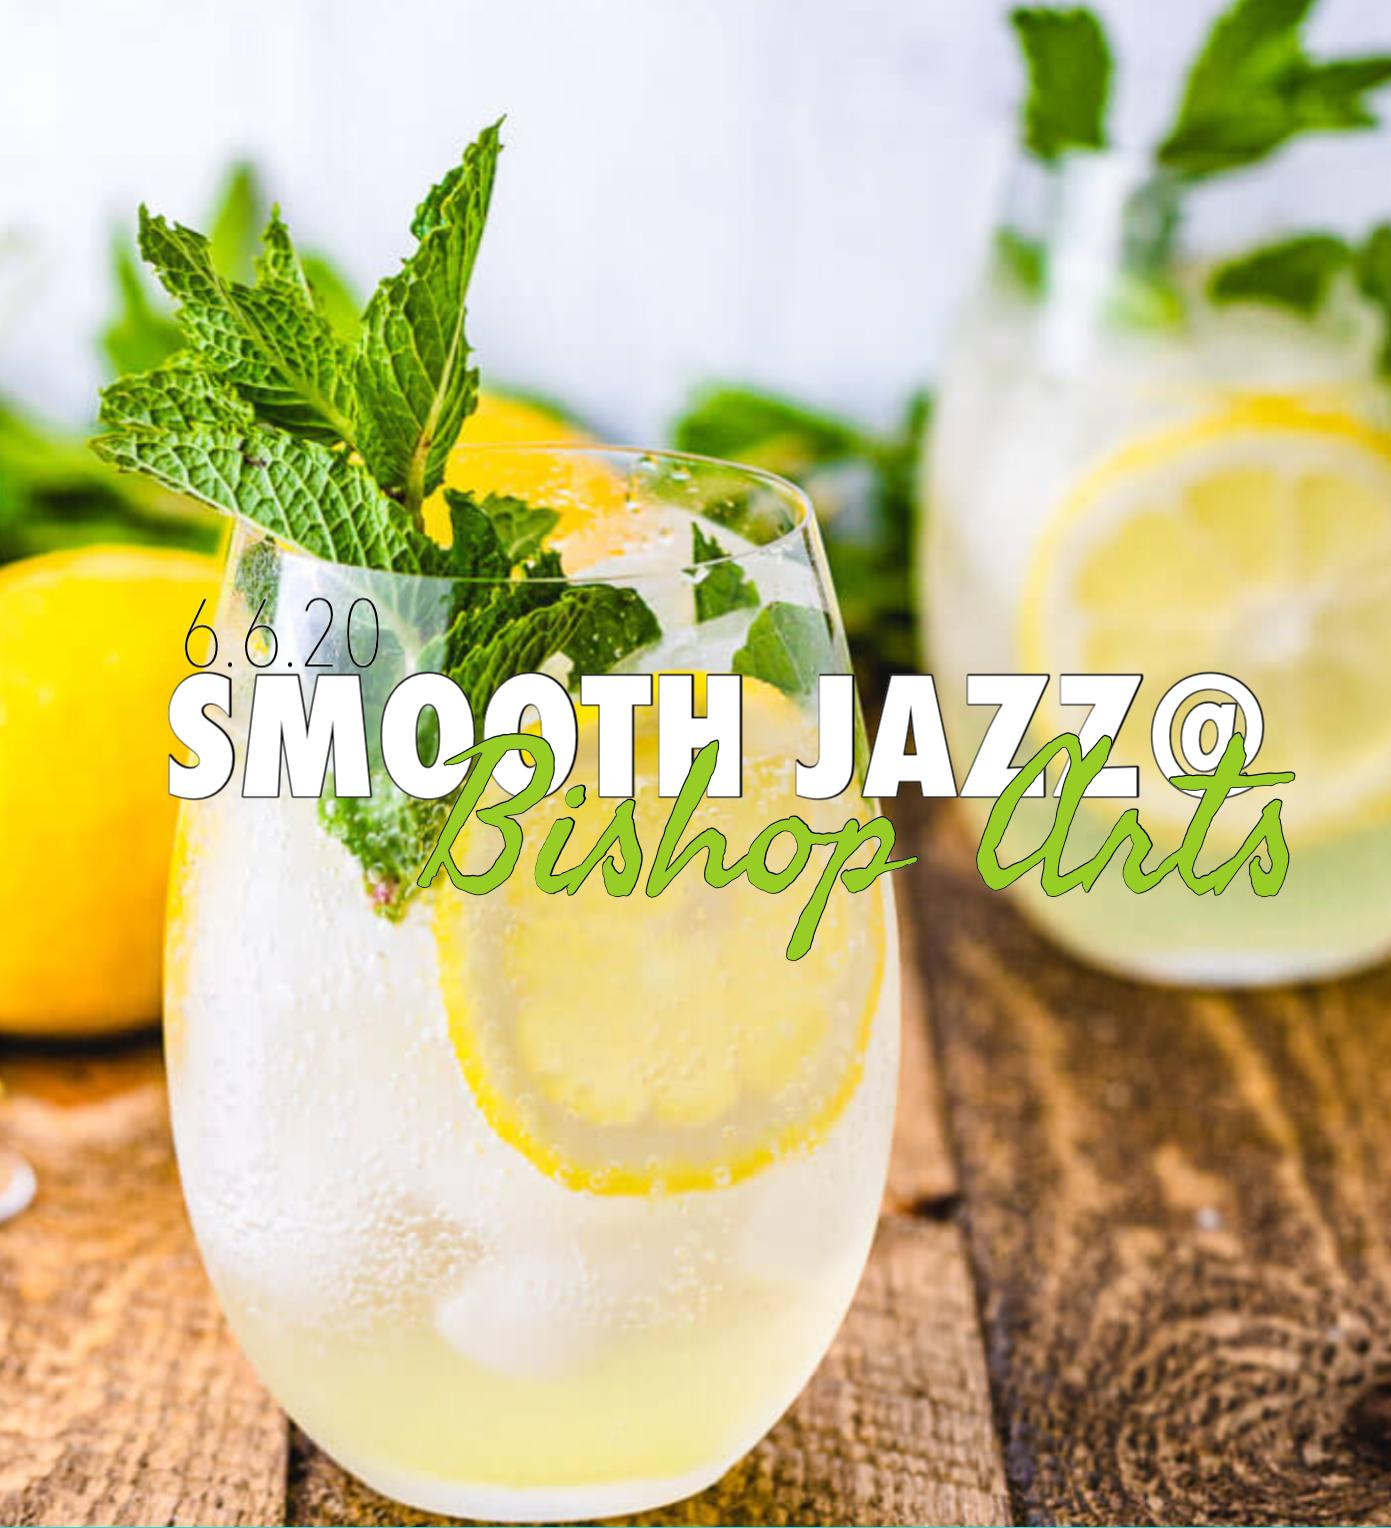 Smooth Jazz @ Bishop Arts (Live Jazz | On The Patio)